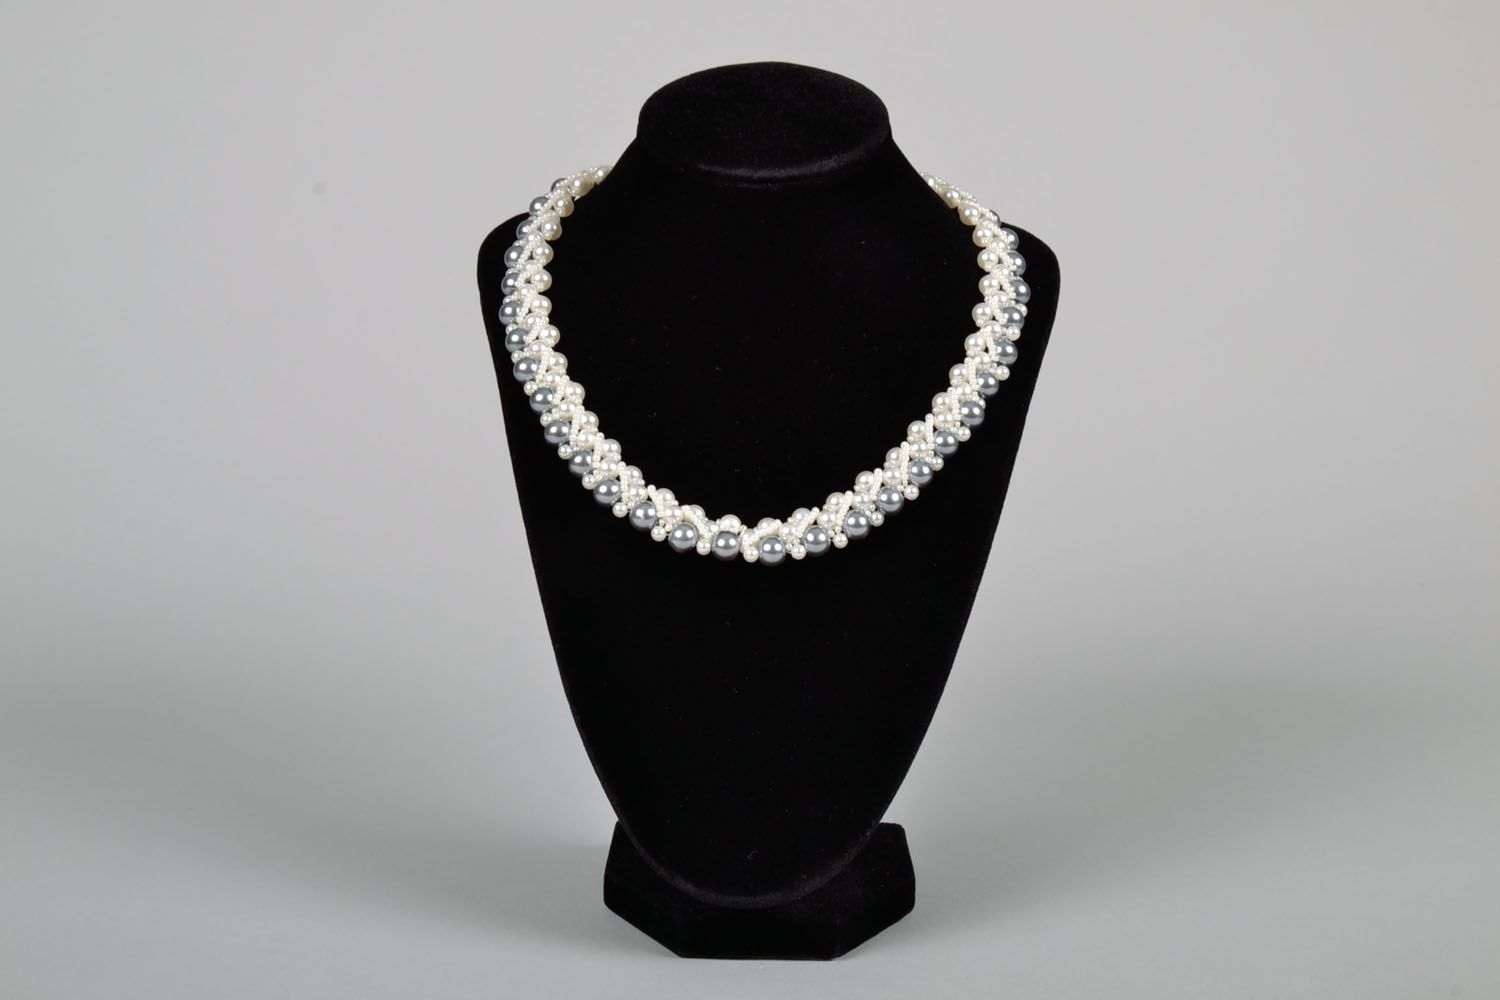 Necklace with artificial pearls photo 2